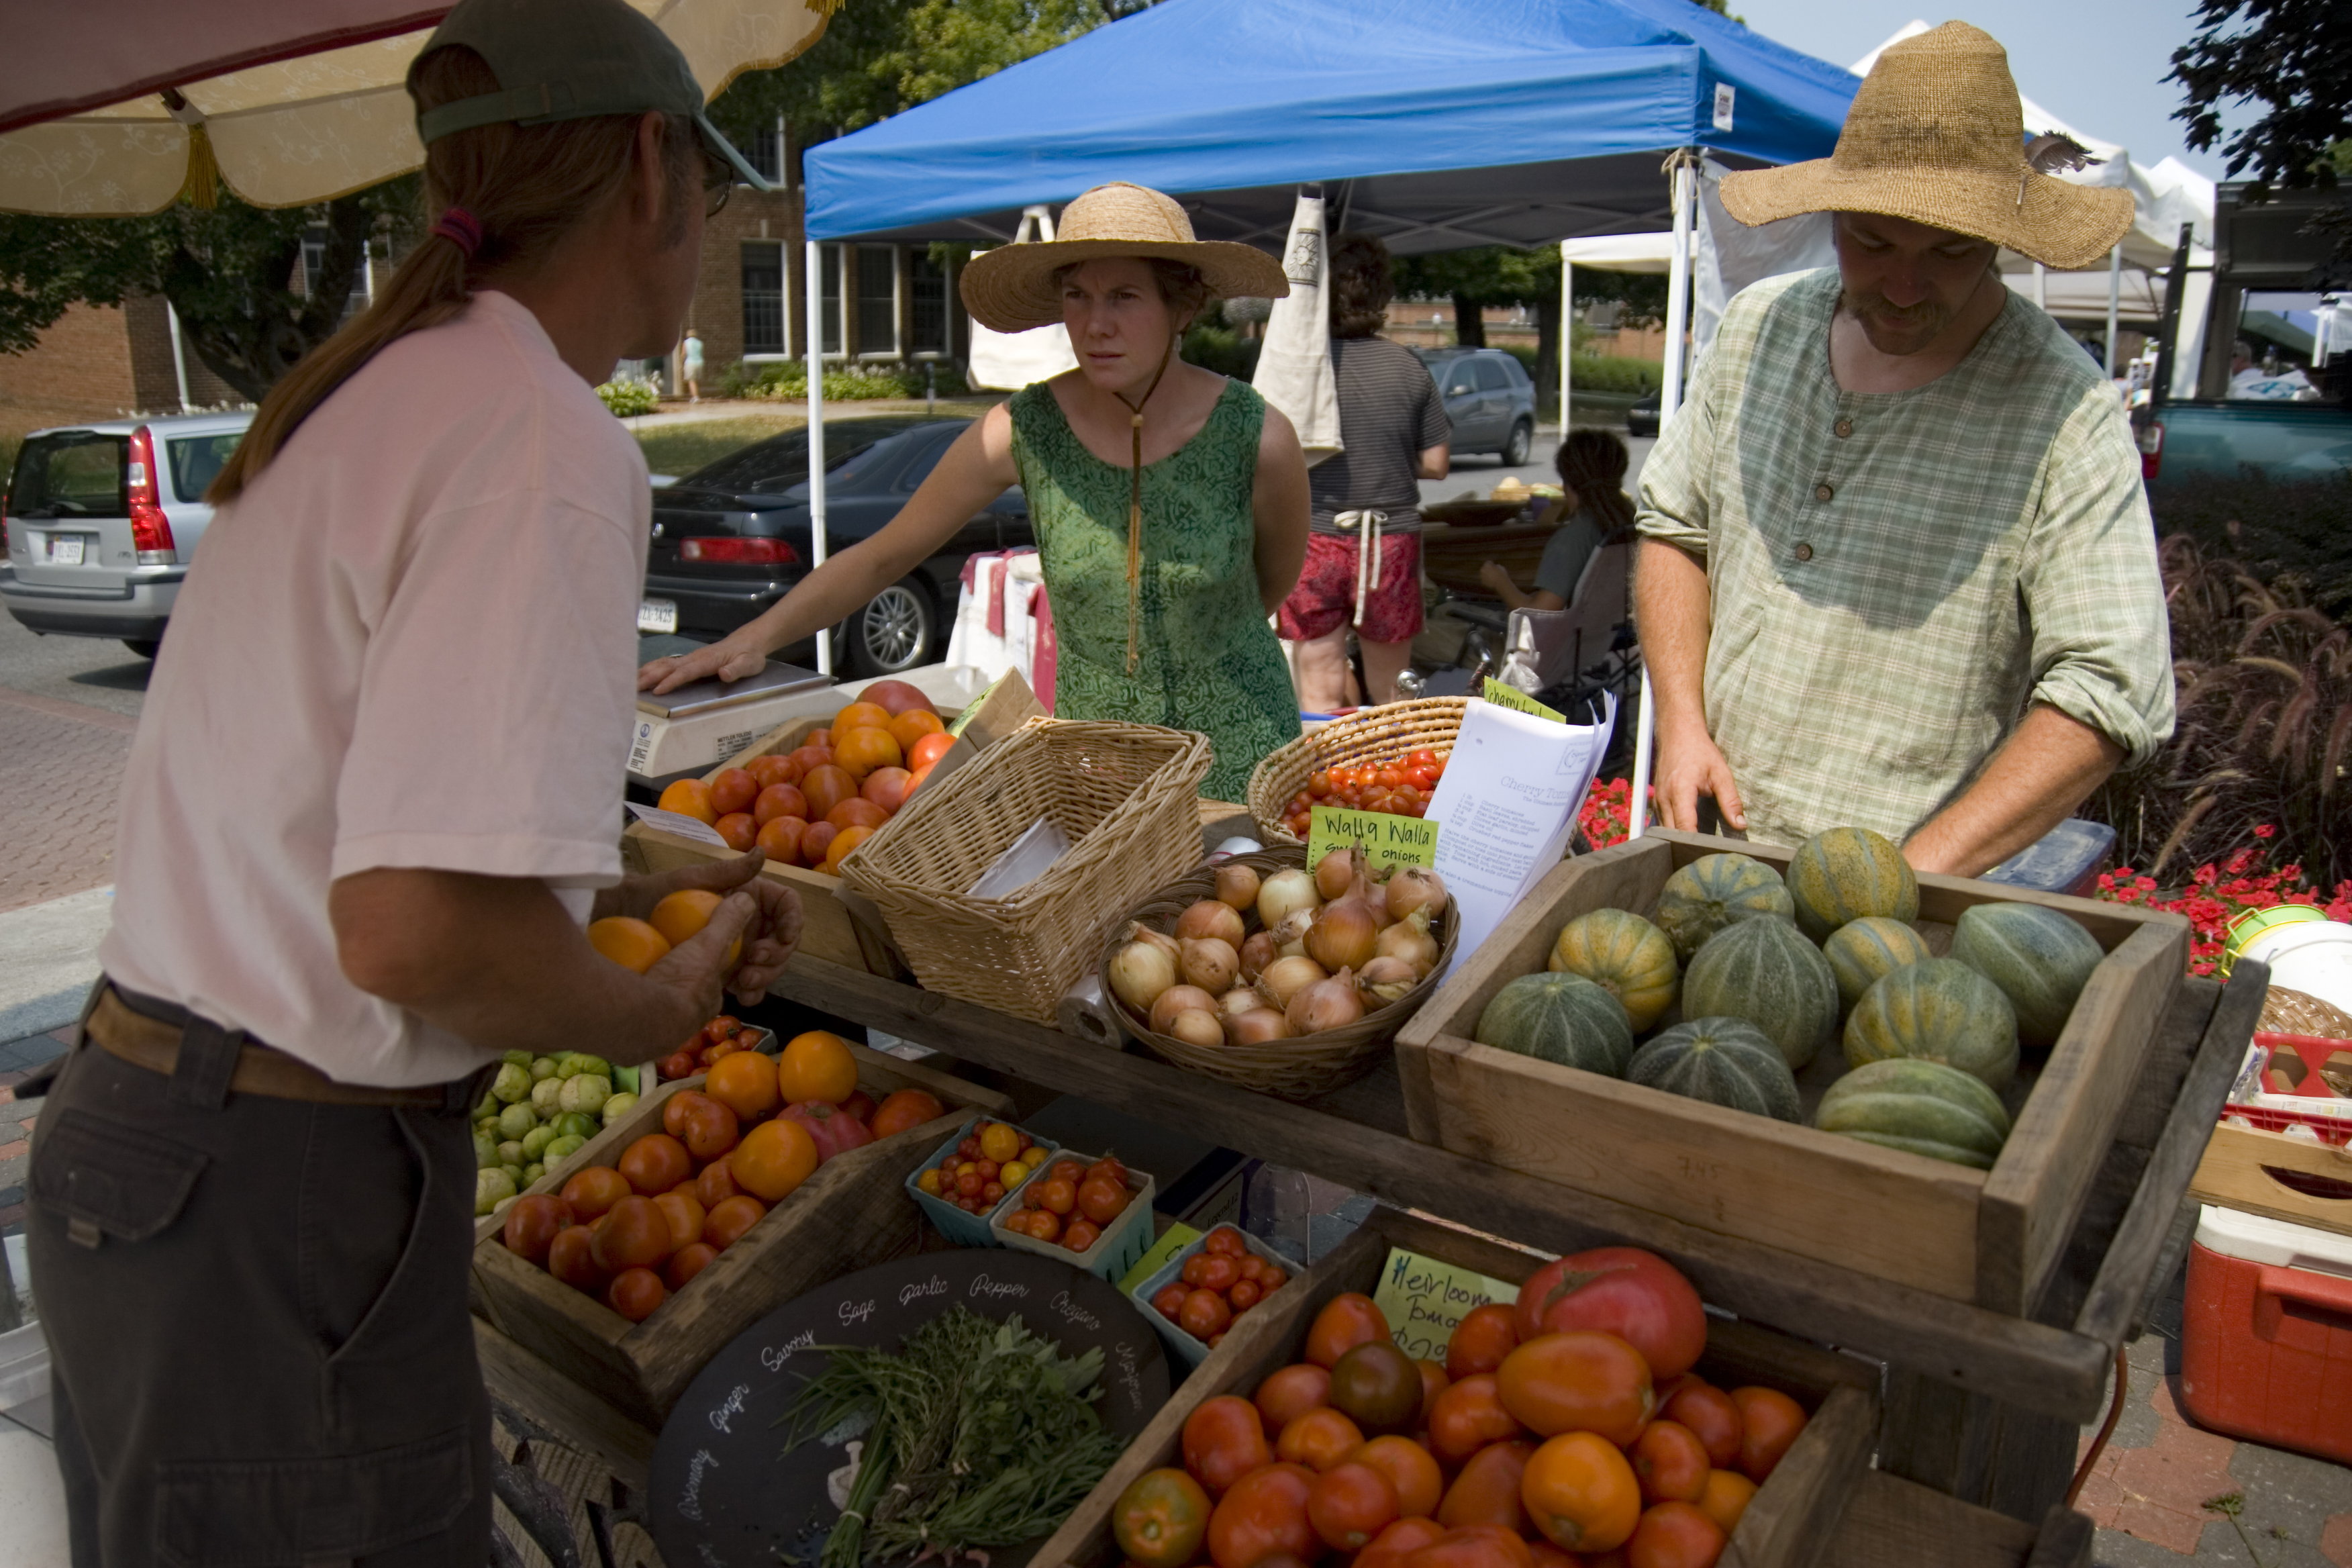 Local vendors at the Blacksburg Farmer's Market